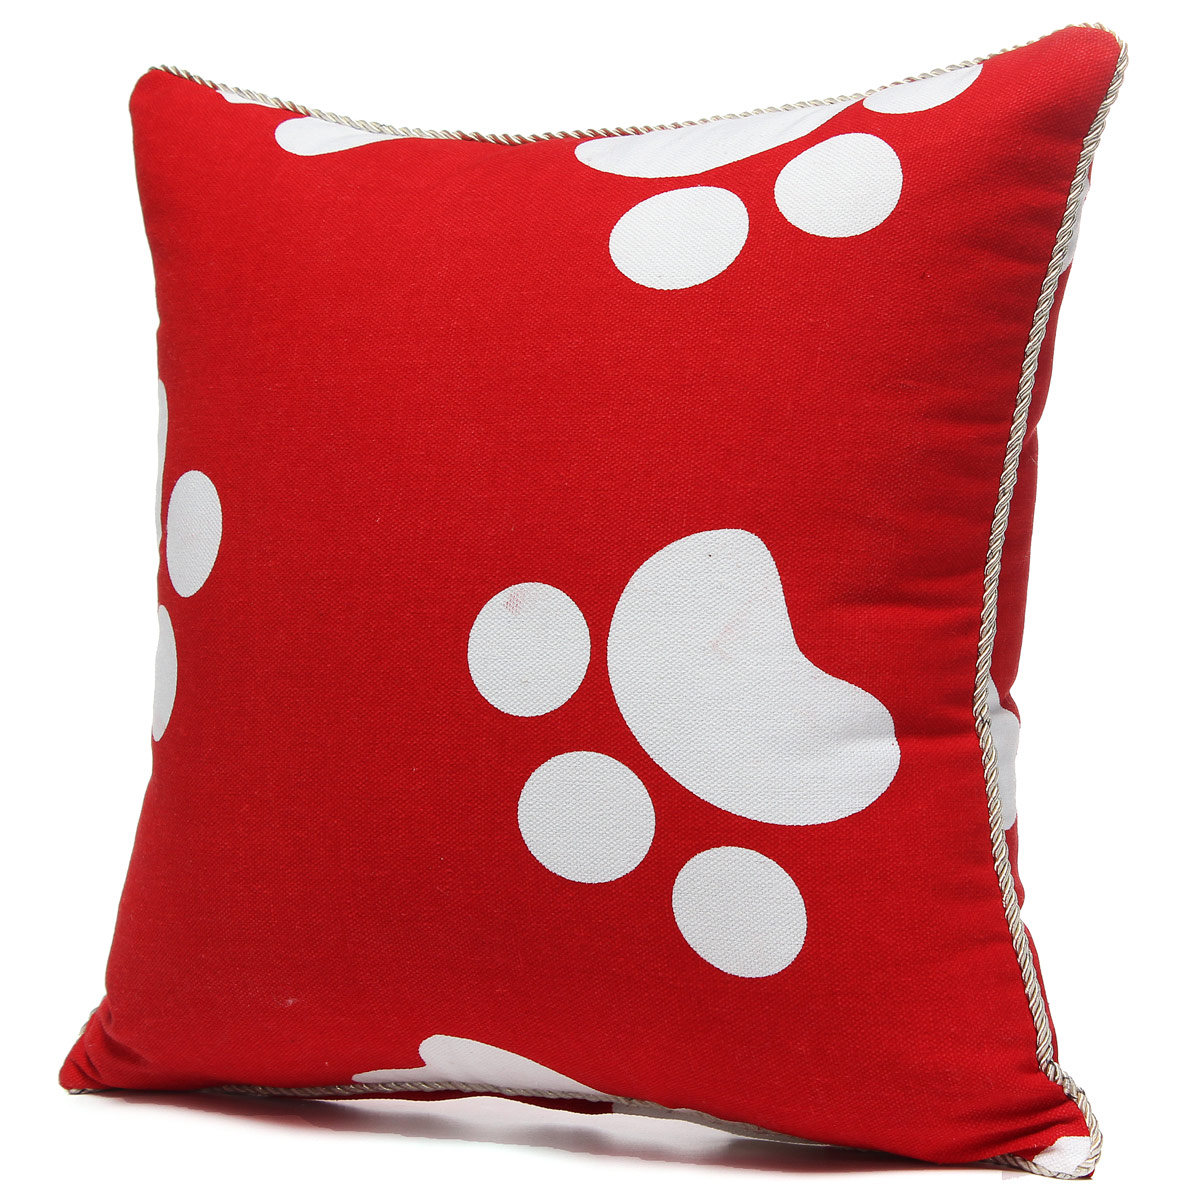 Vintage Decorative Pillow Covers : Vintage Fashion Square Throw Pillow Cases Home Sofa Decorative Cushion Cover eBay